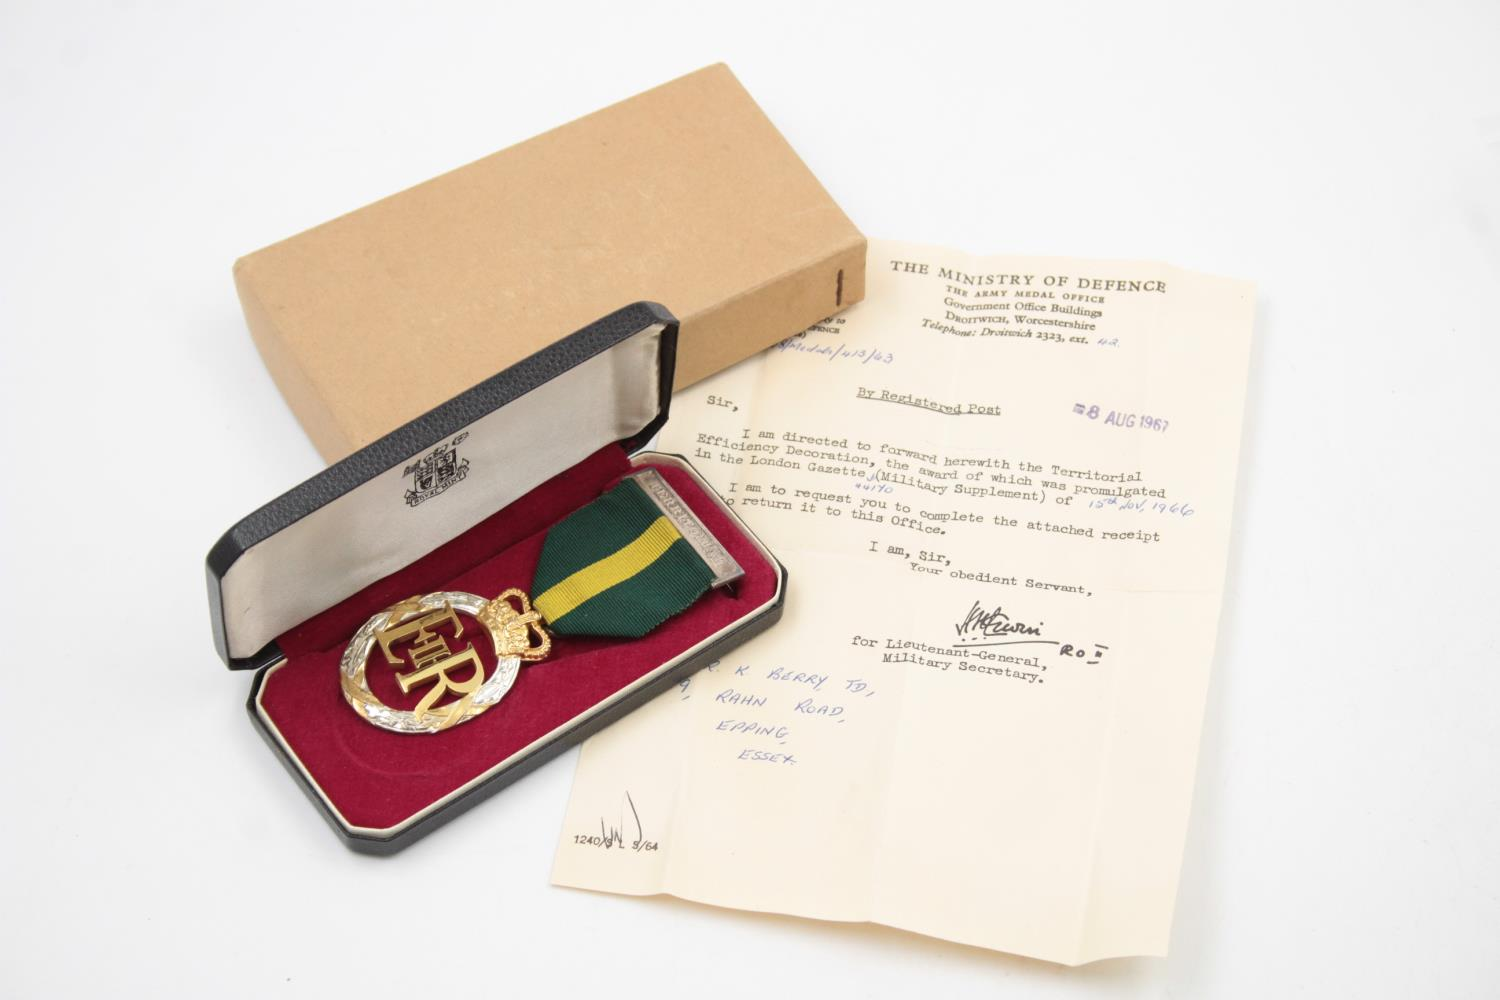 Boxed ERII Officers Territorial Decoration Dated 1966 w/ Award Letter